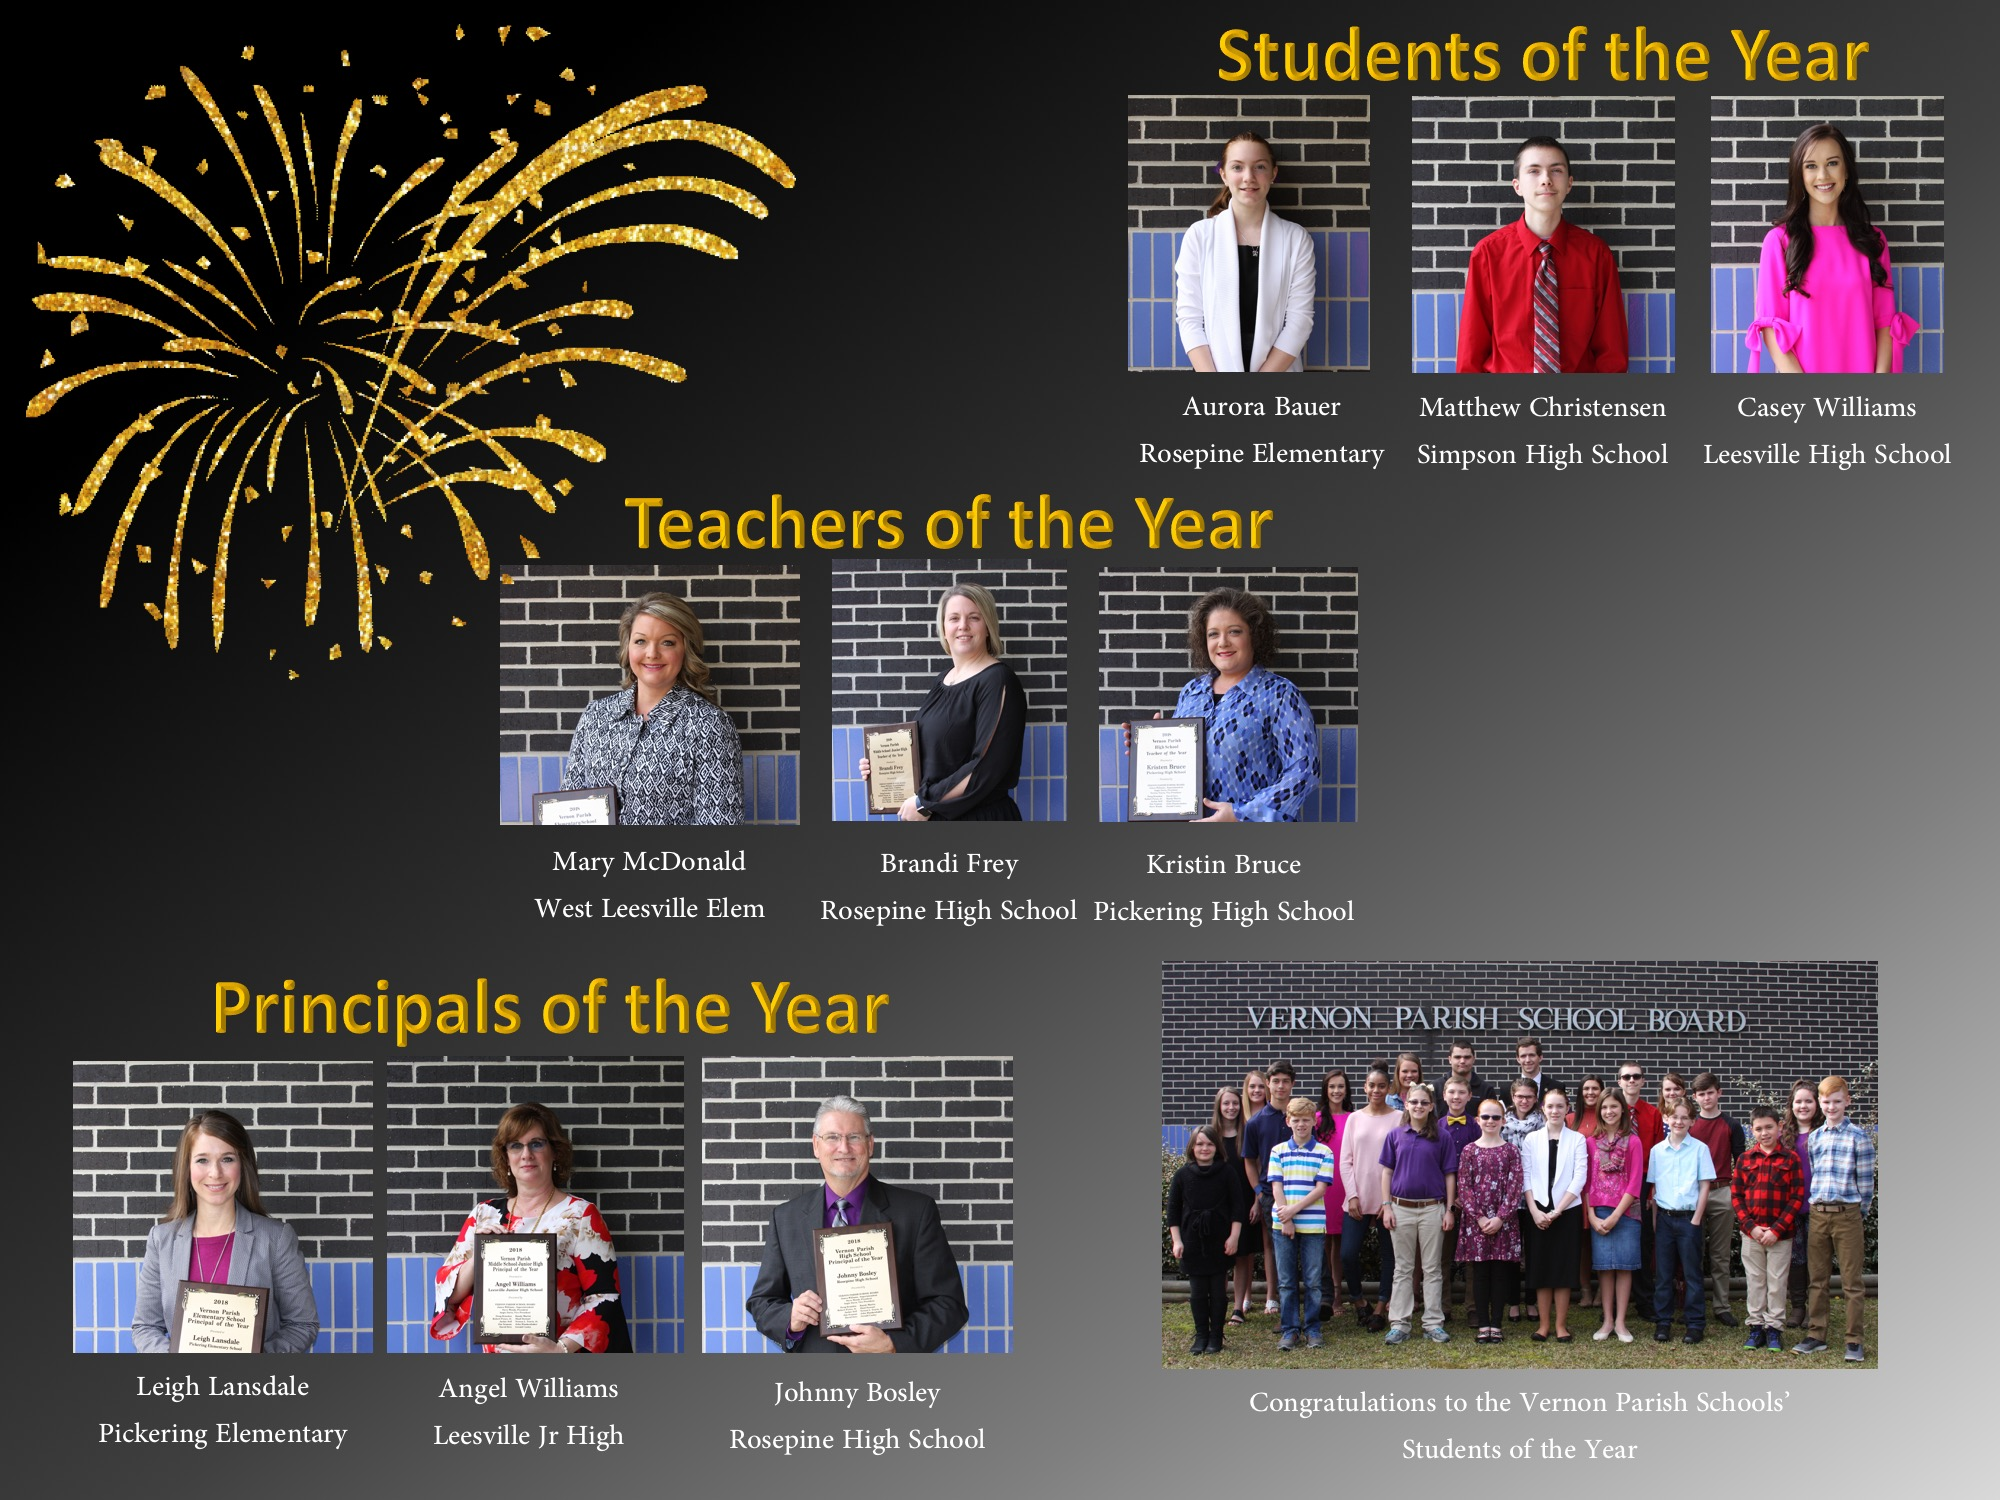 Students, teachers, and principals of the year photographs .